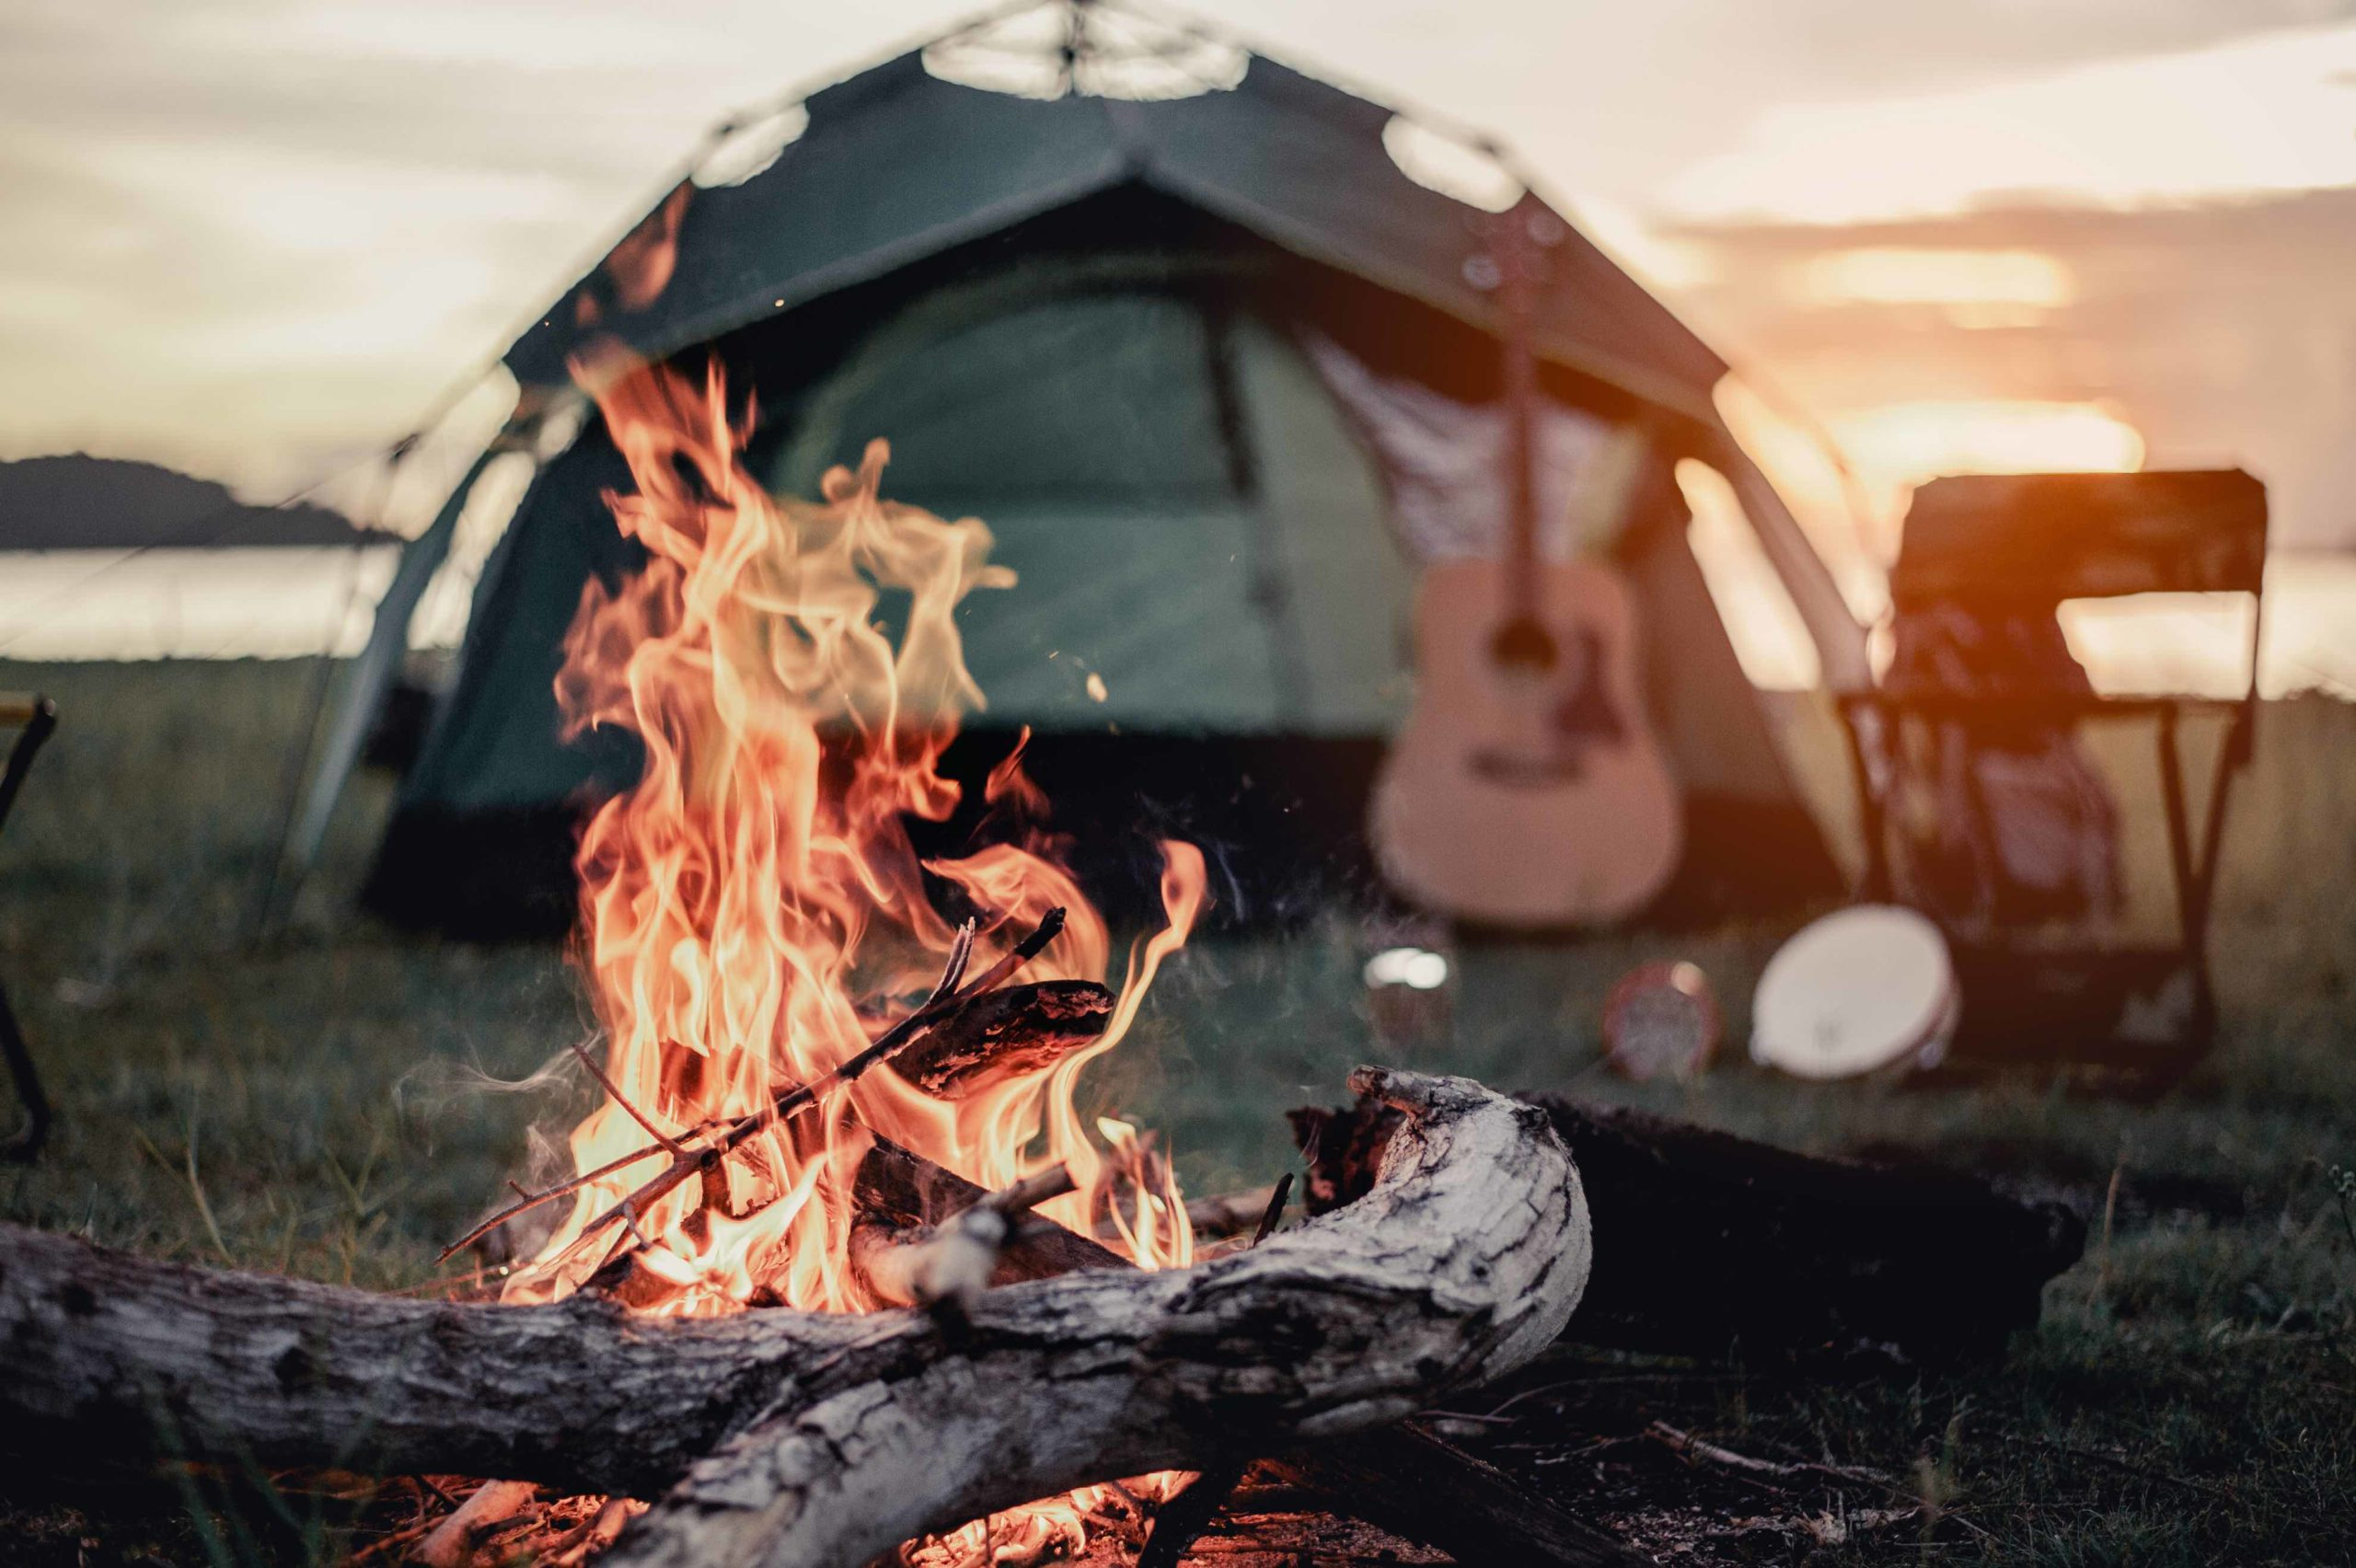 Campfire and tent